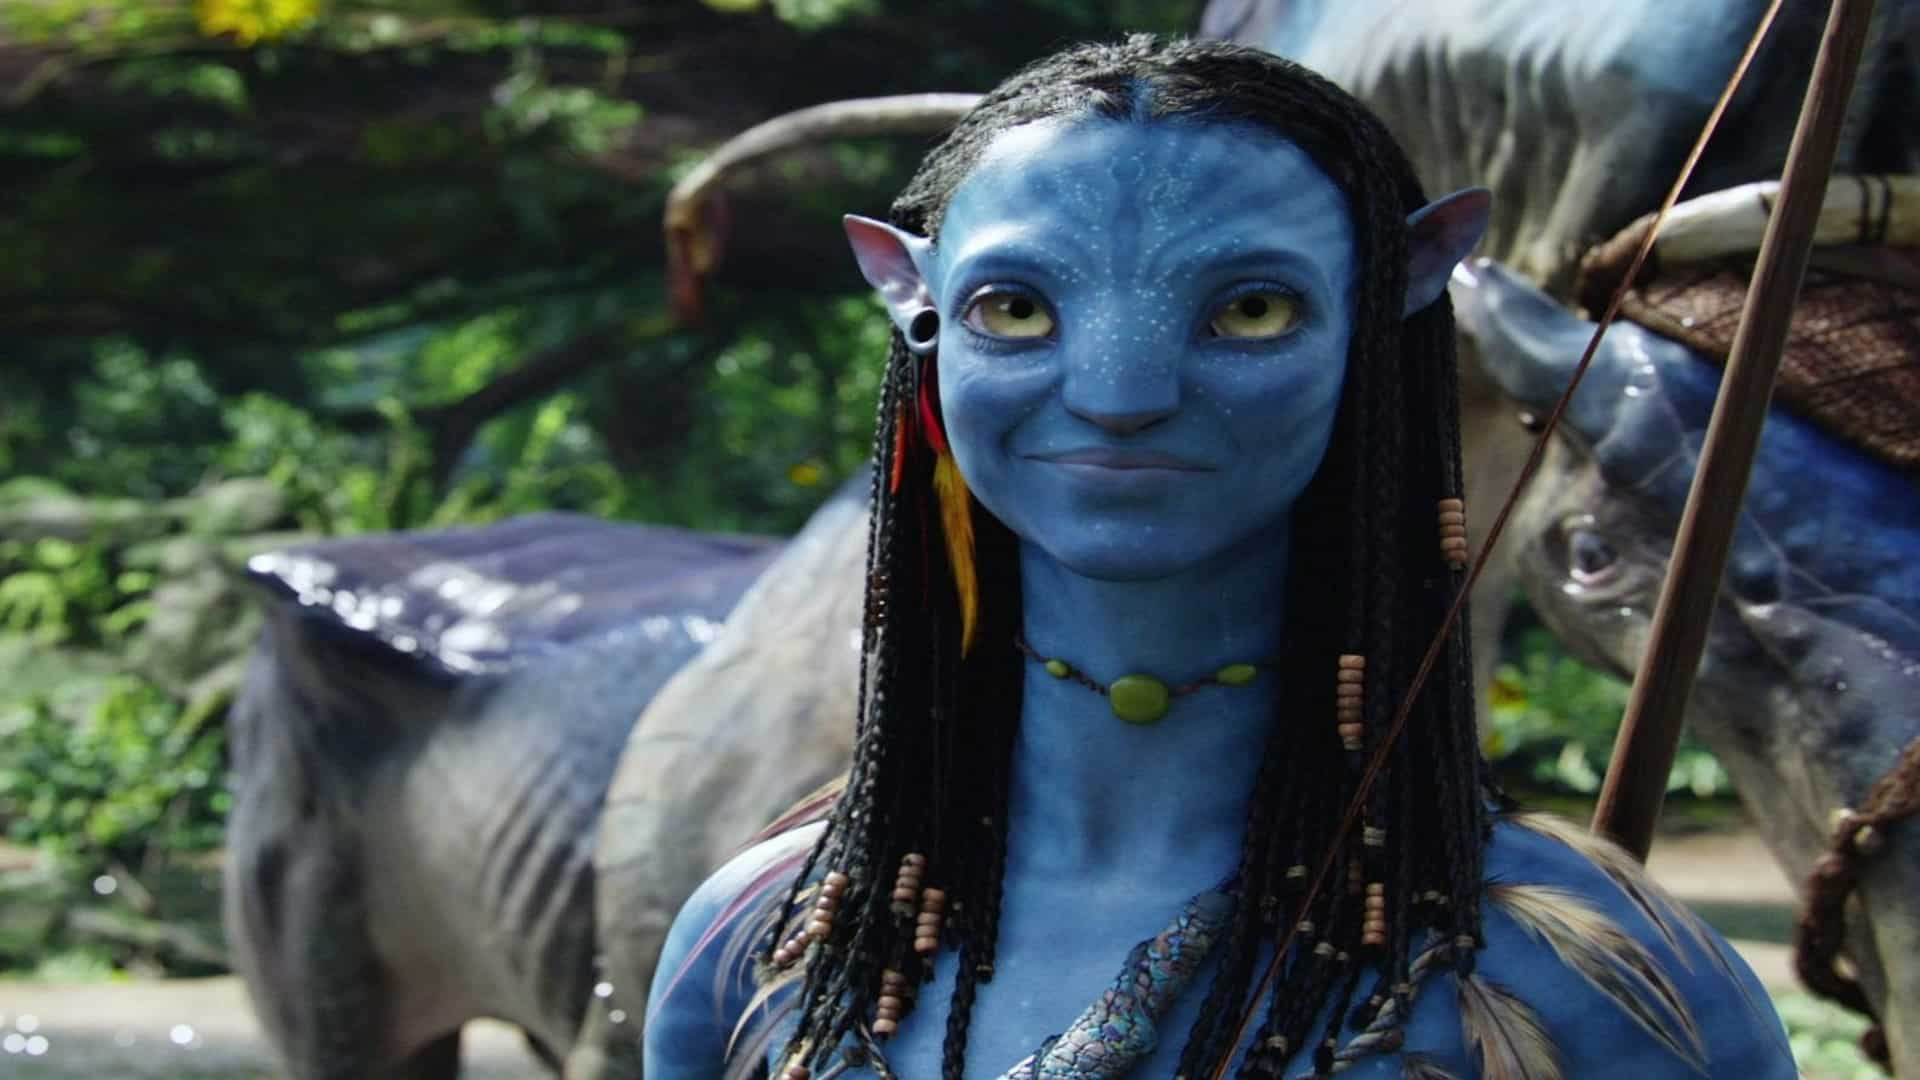 Avatar 2 set for a 2021 release date